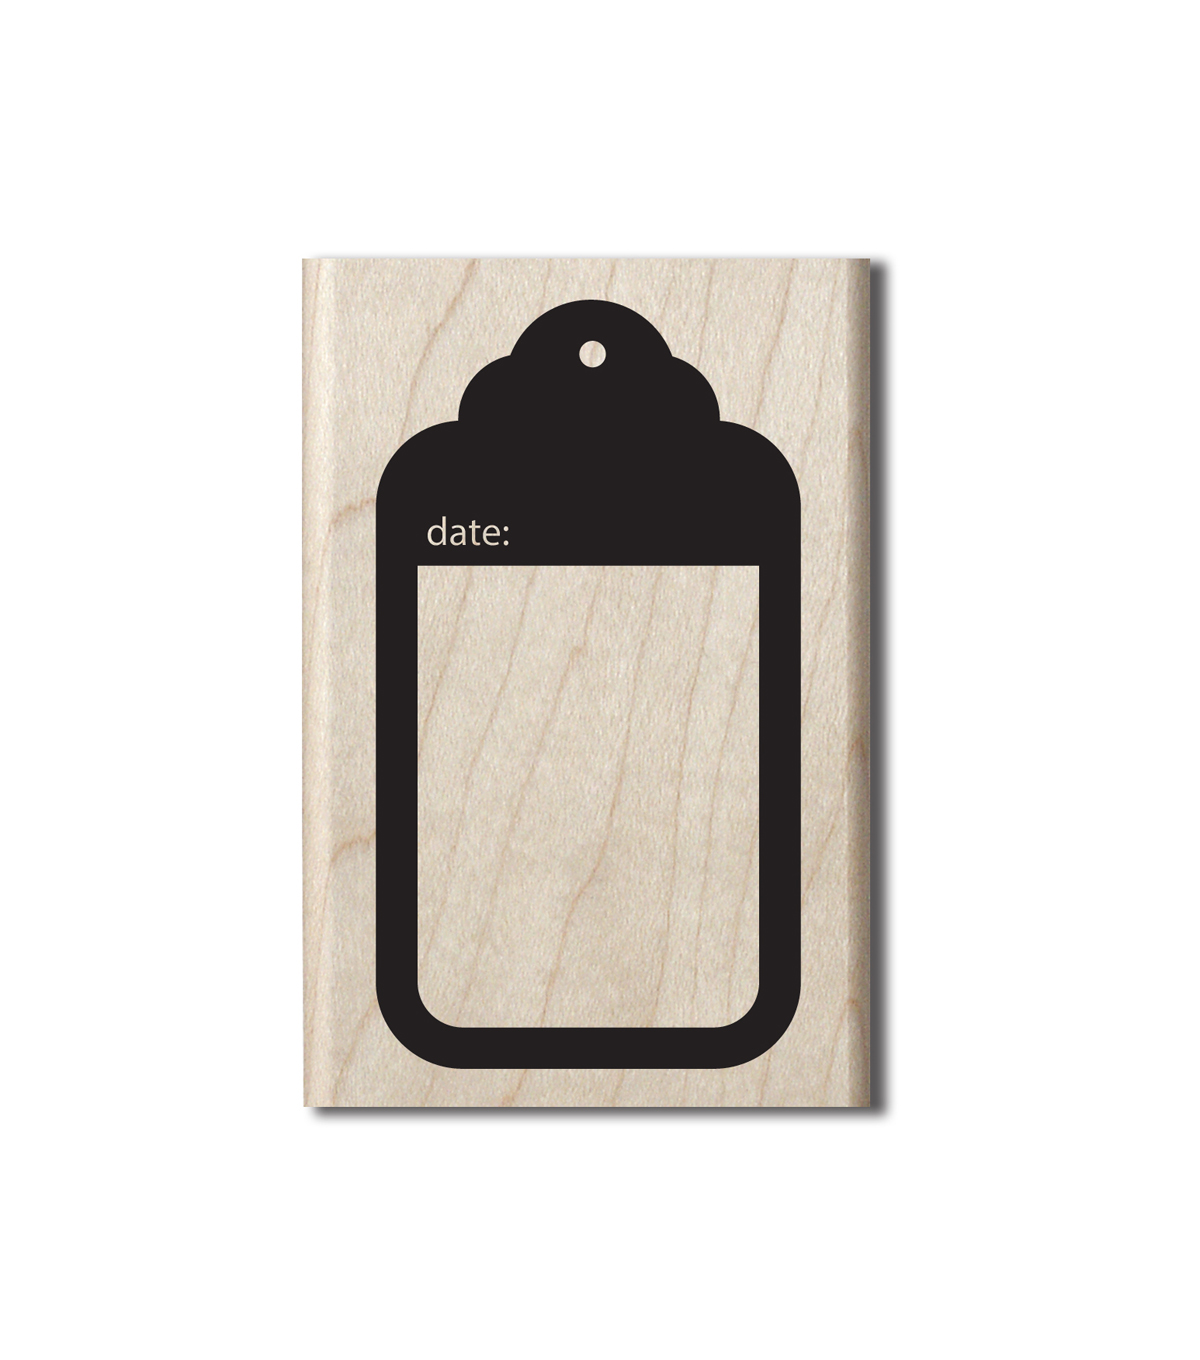 Jillibean Soup Wood Stamp-Date Tag